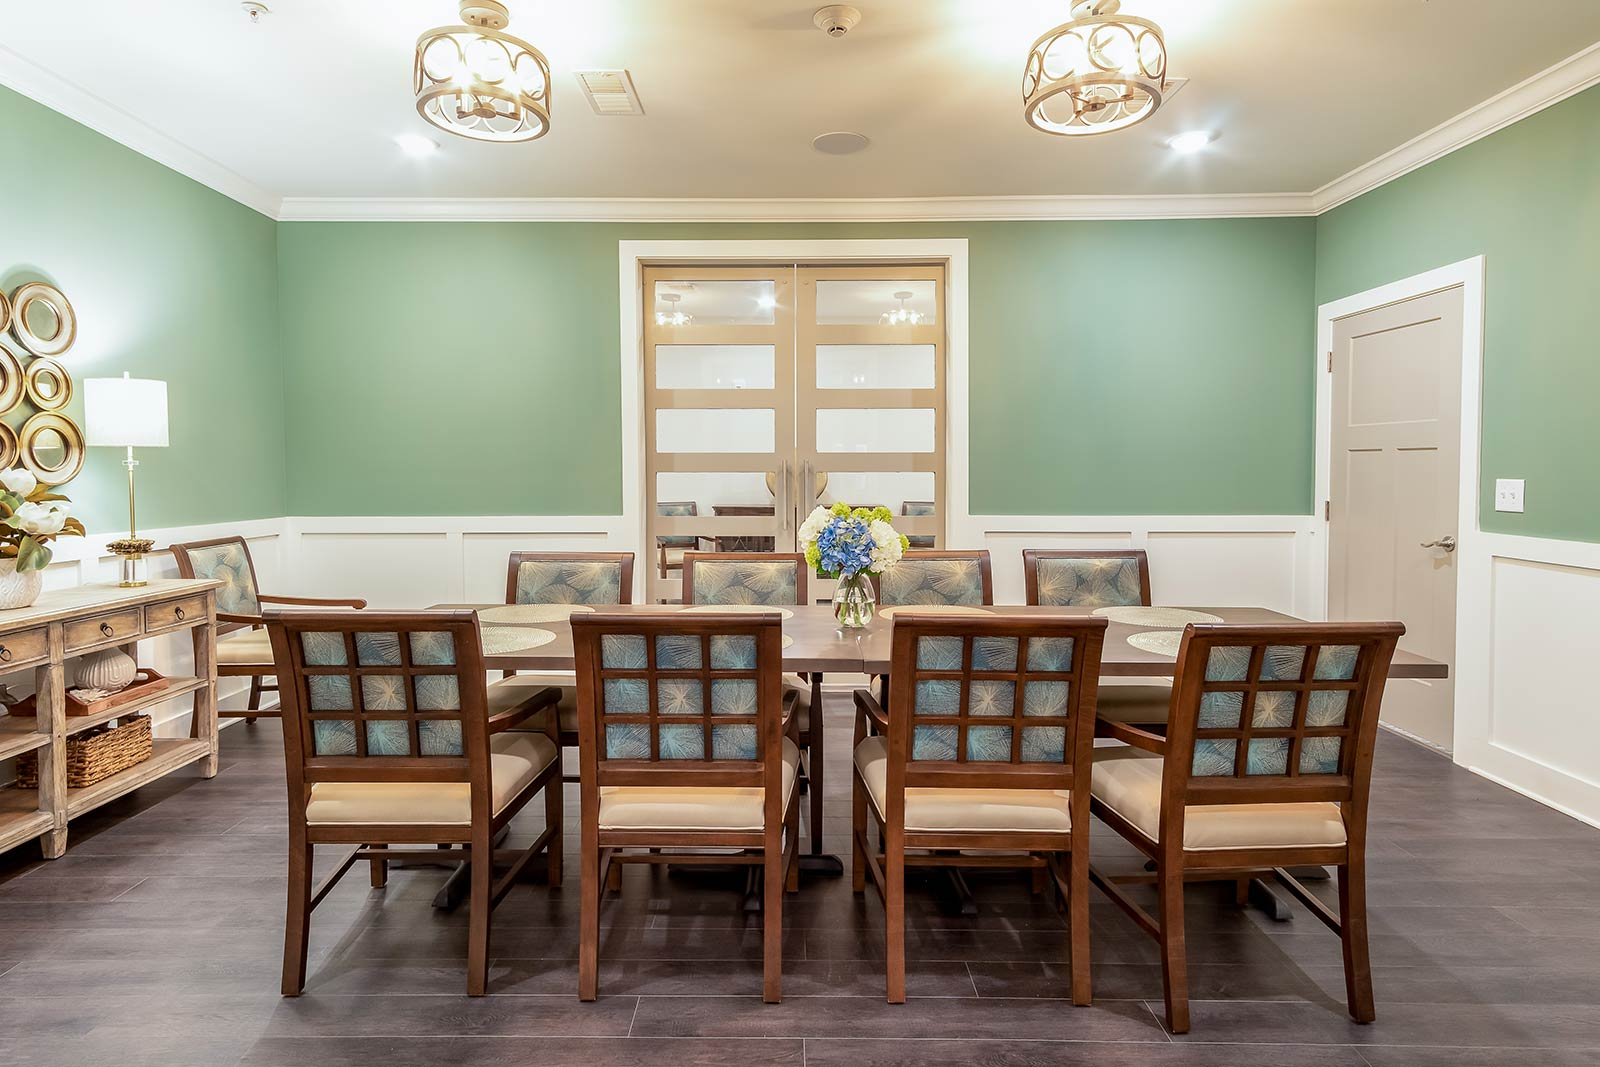 Private Dining Room For Special Occasions In Our Warner Robins GA Assisted Living And Memory Care Community